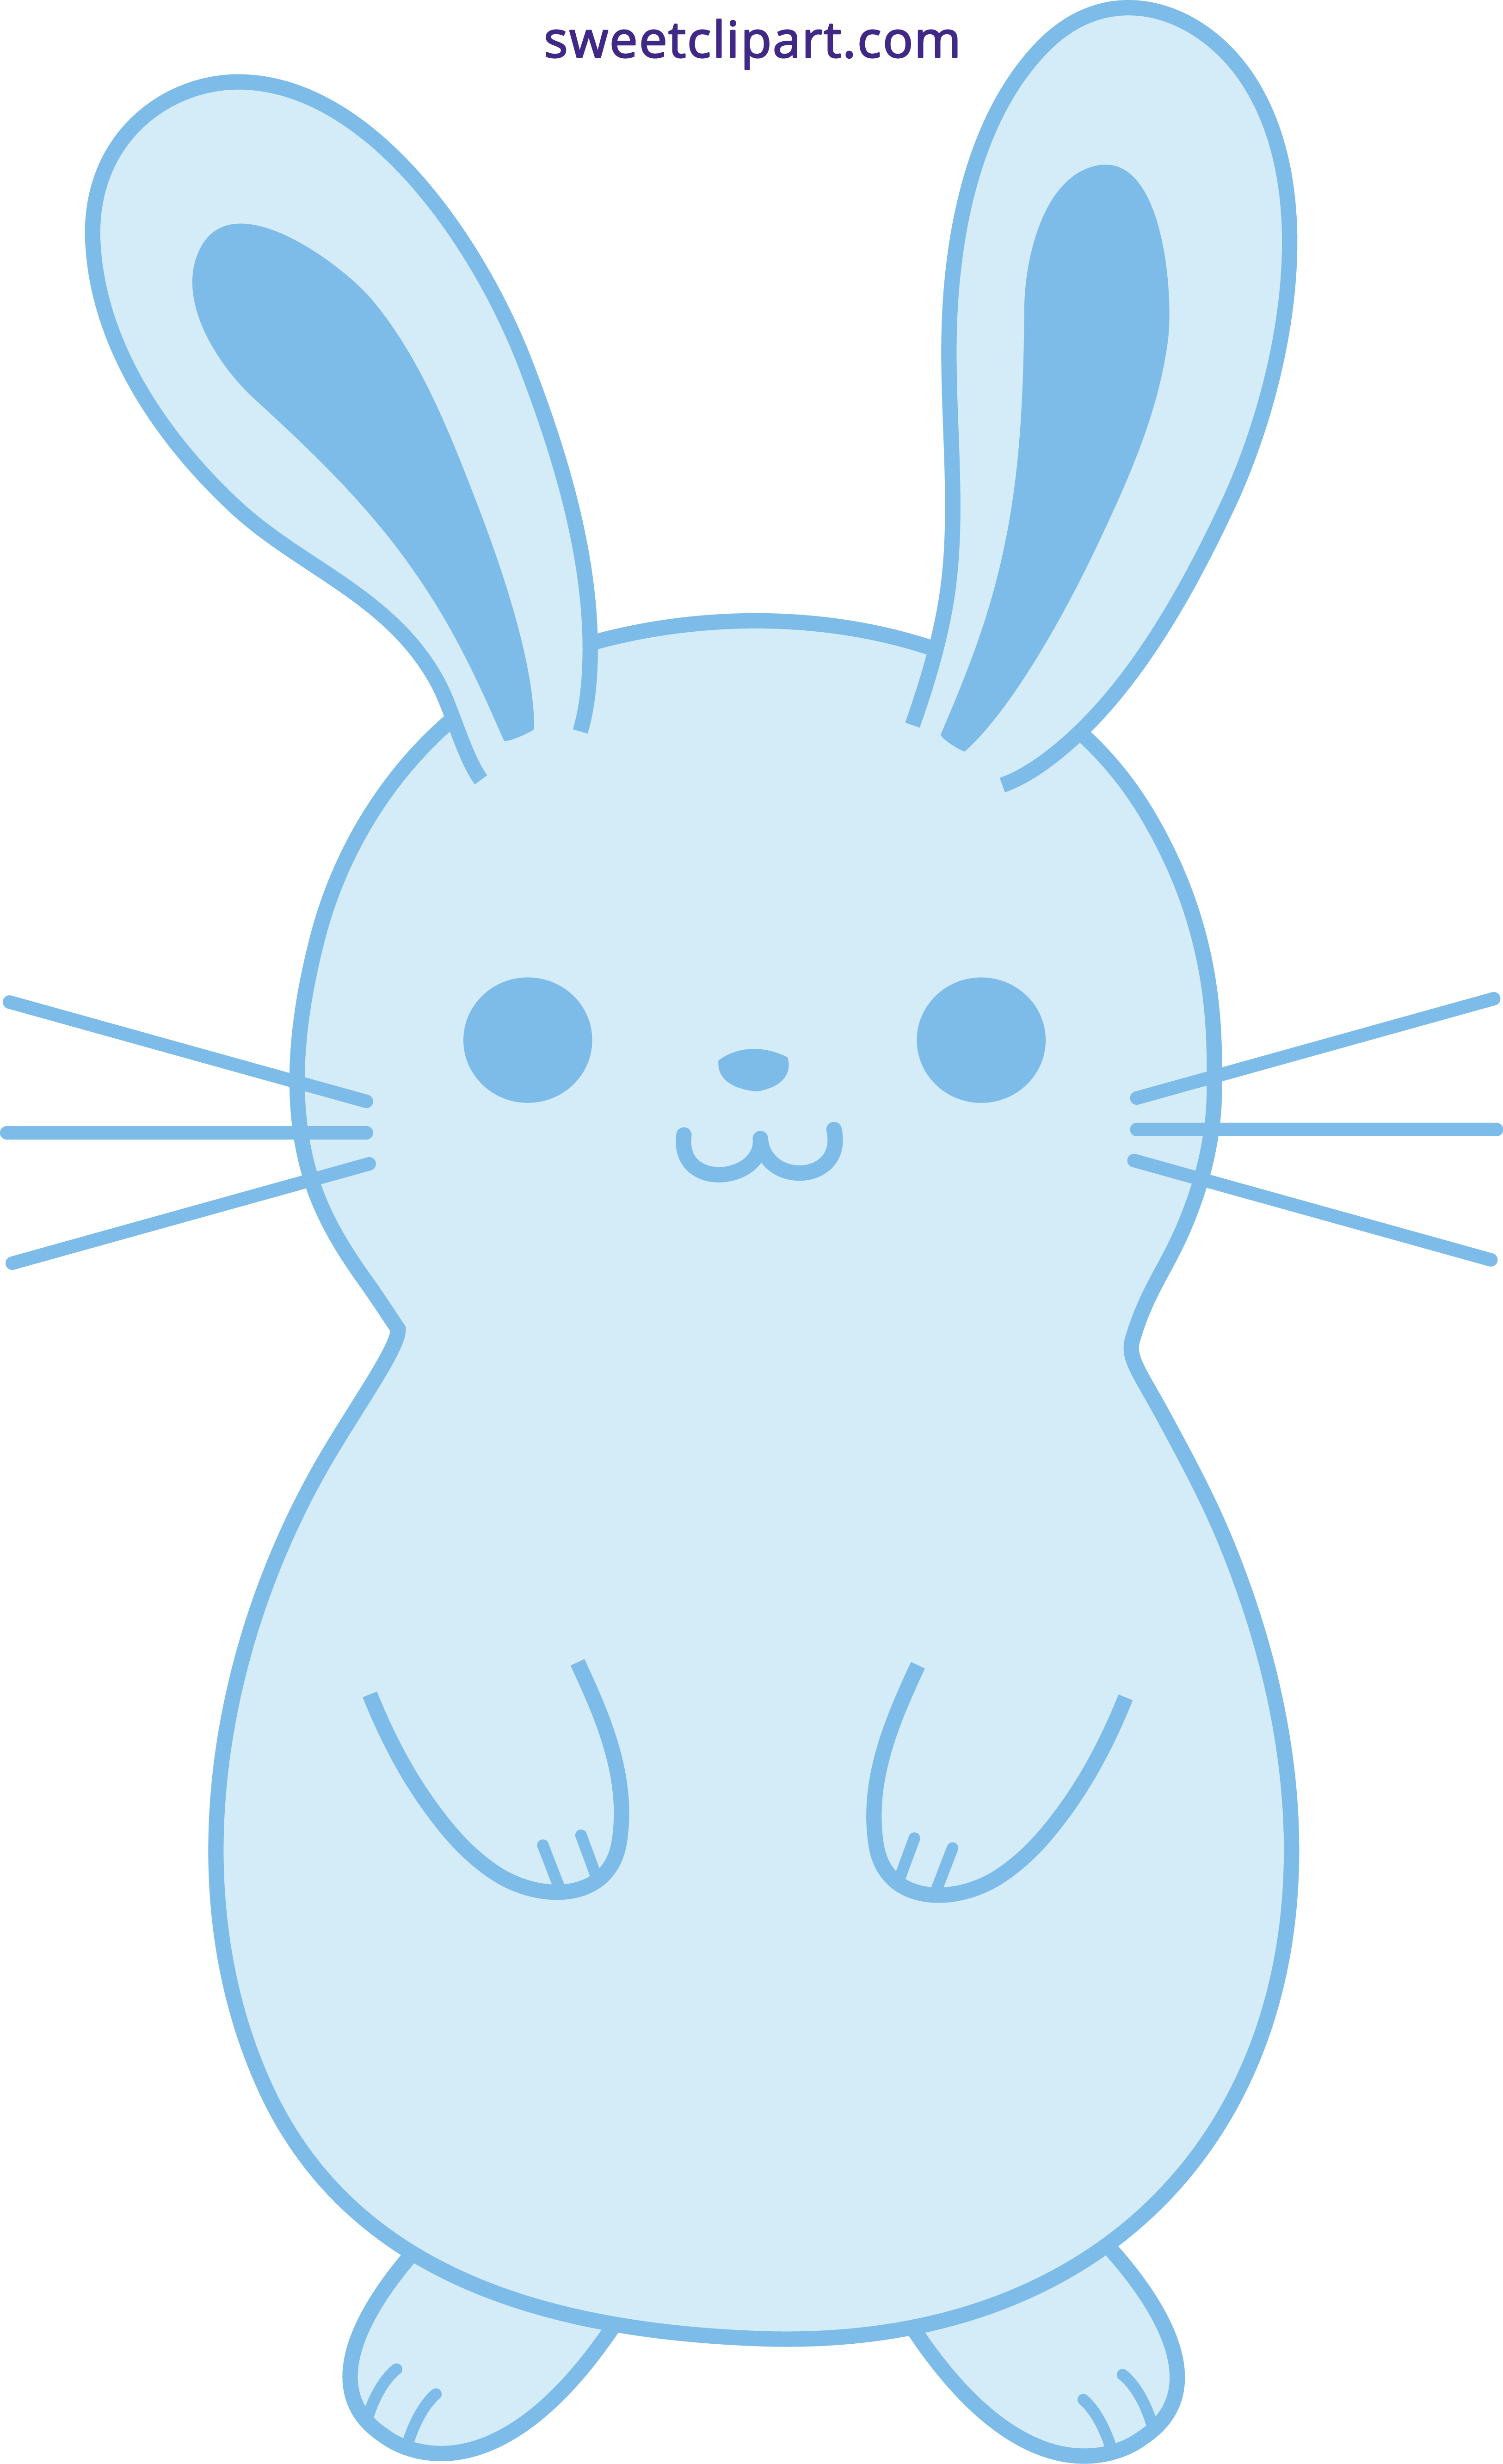 Cool clipart bunny. Cute blue easter rabbit